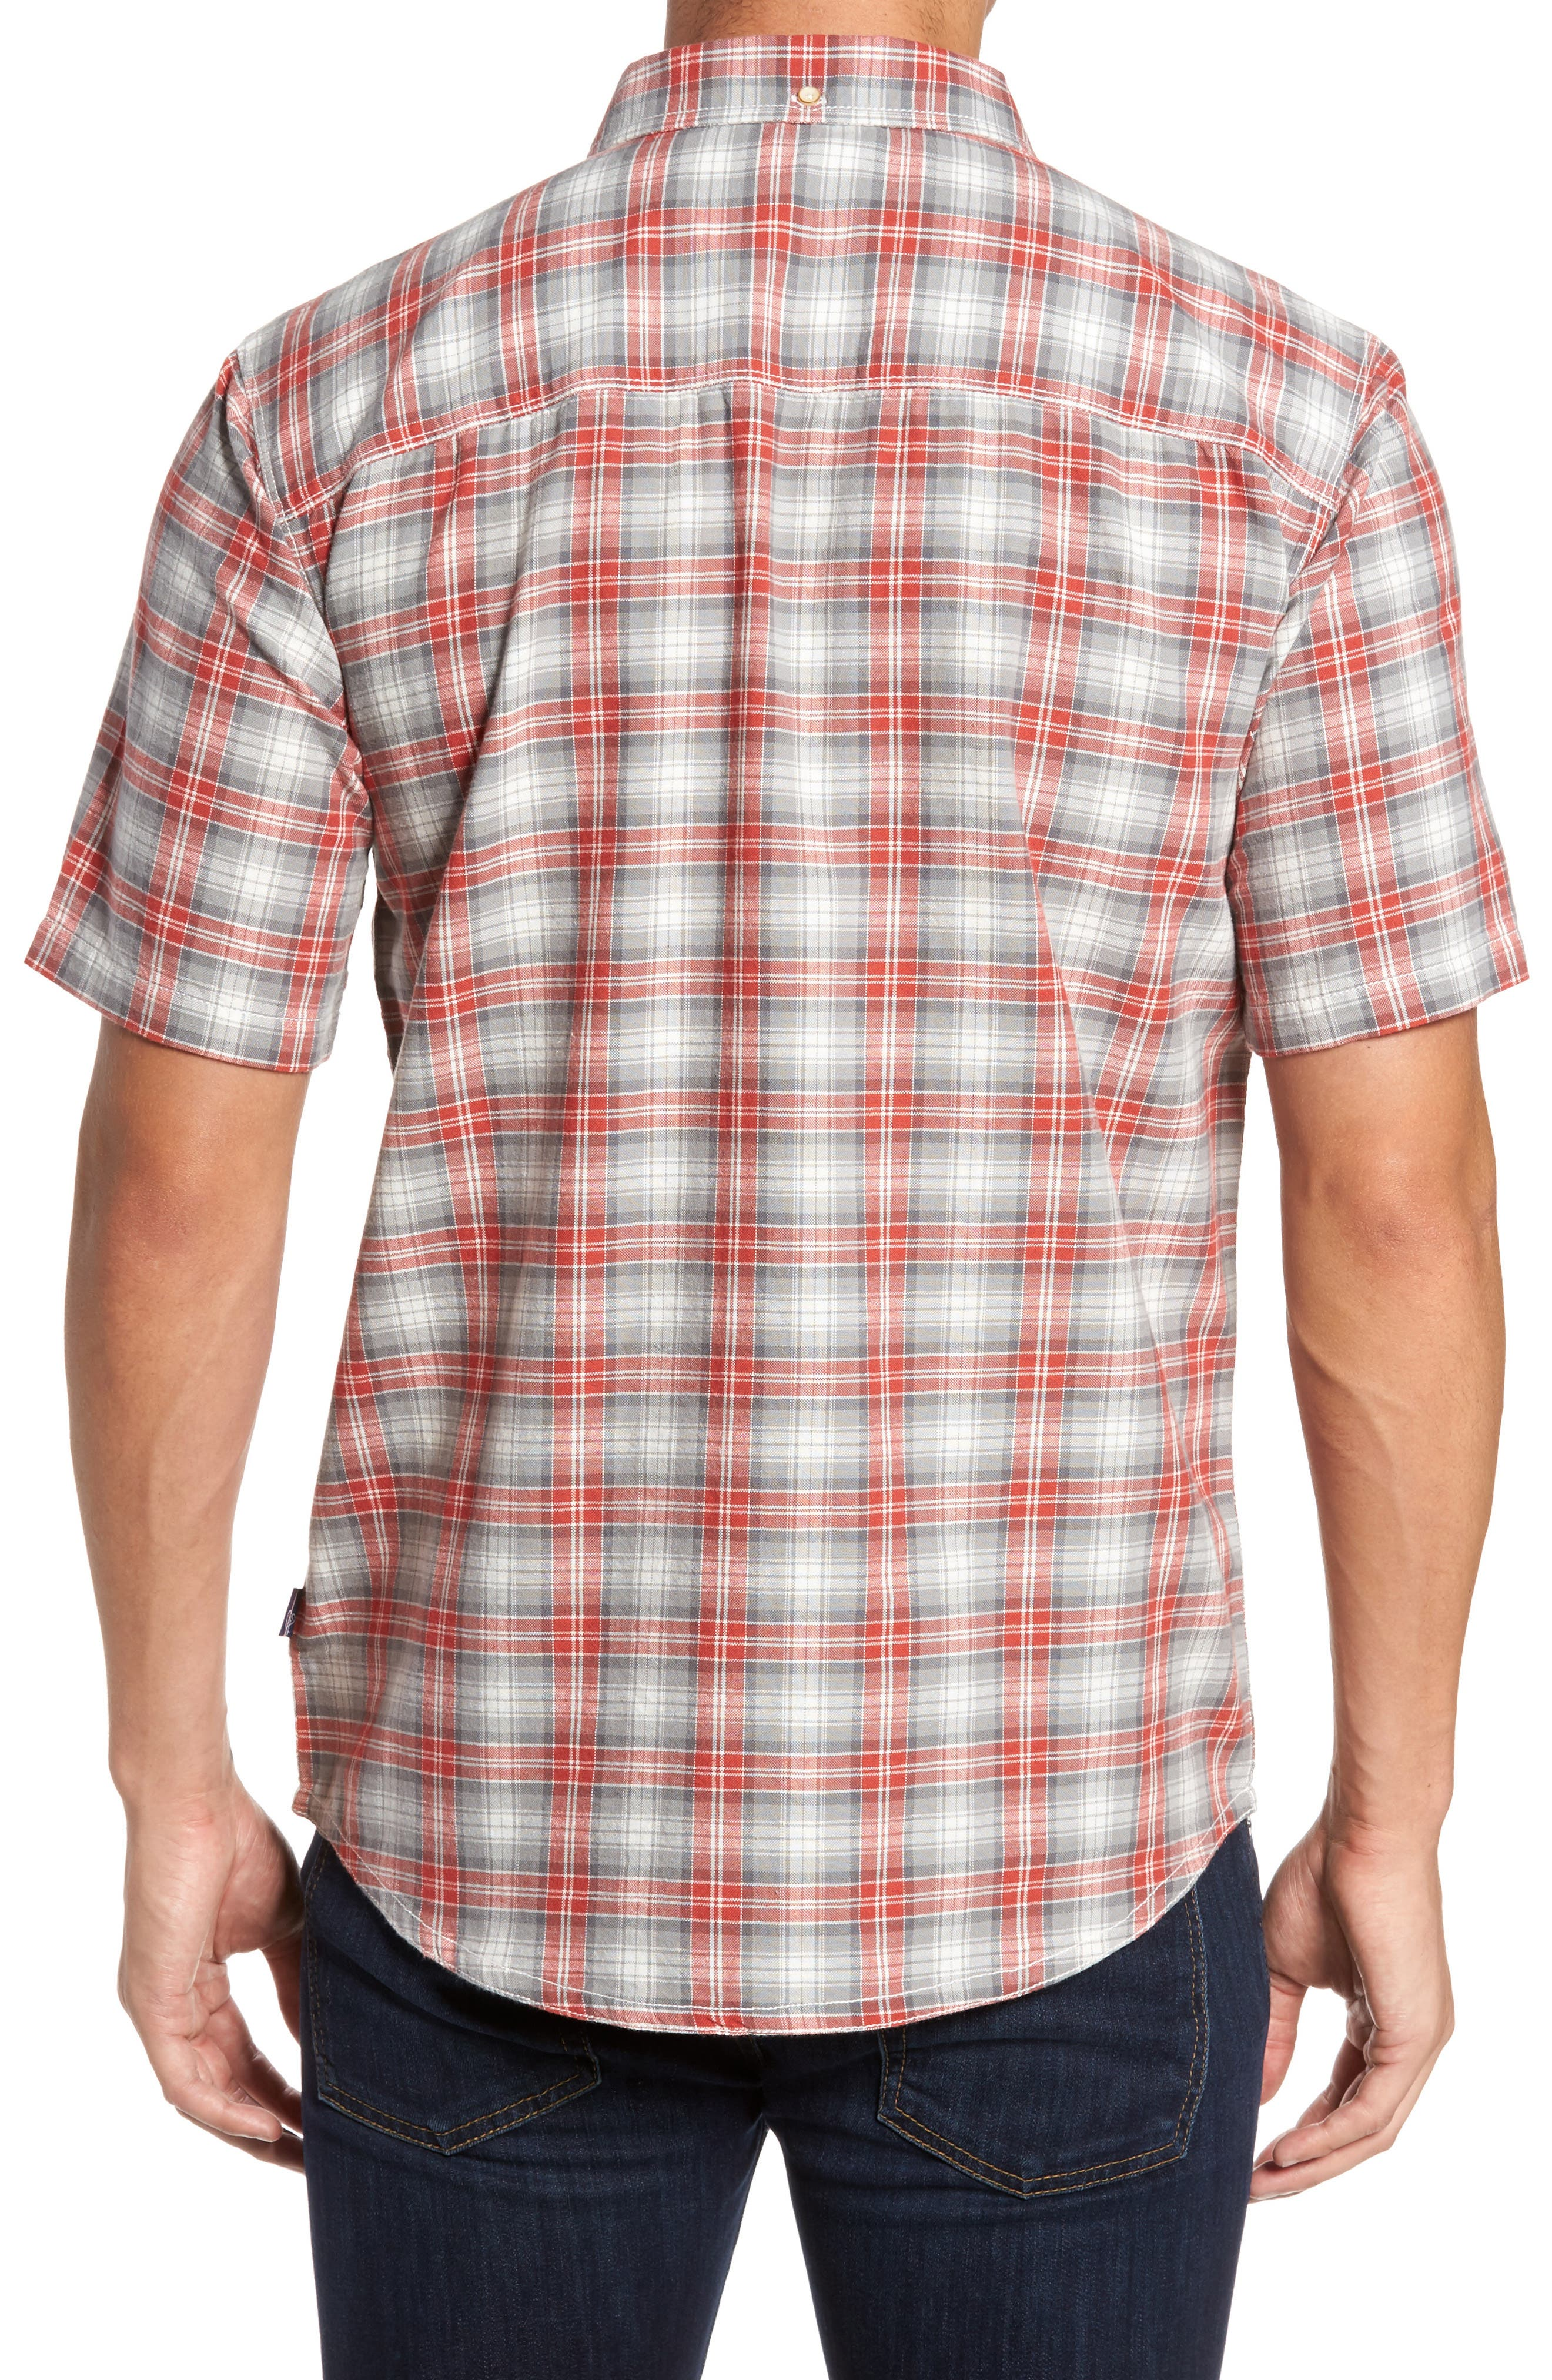 Voyager Plaid Sport Shirt,                             Alternate thumbnail 3, color,